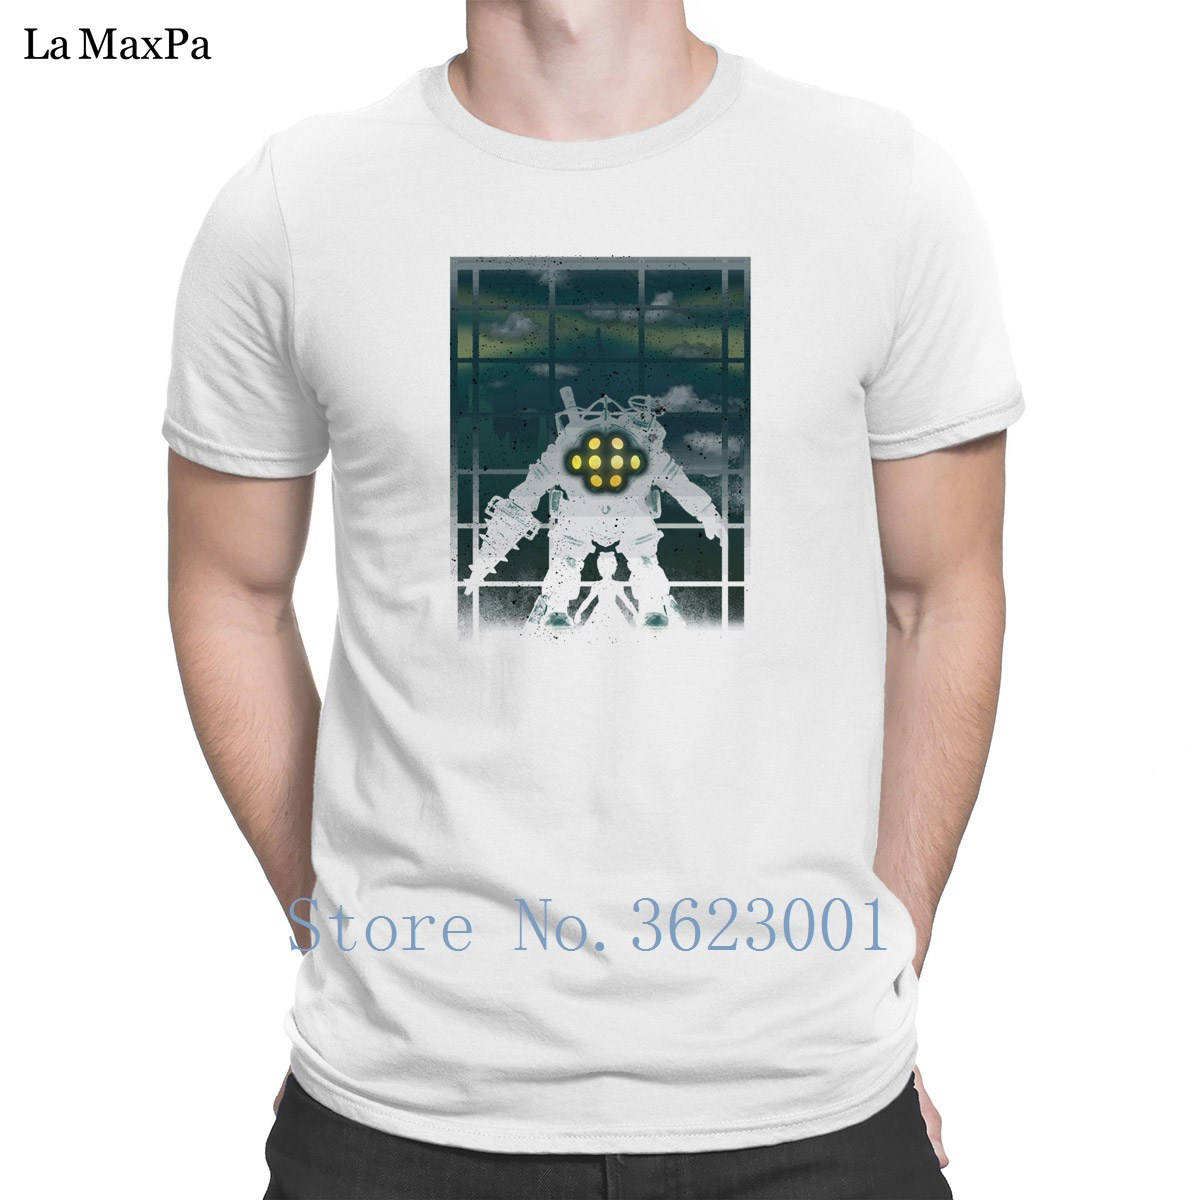 Design Newest Mens T-Shirt Rapture Tee Shirt For Mens Top Quality Cotton Tshirt For Men Summer Style T Shirt For Men Fun Pattern